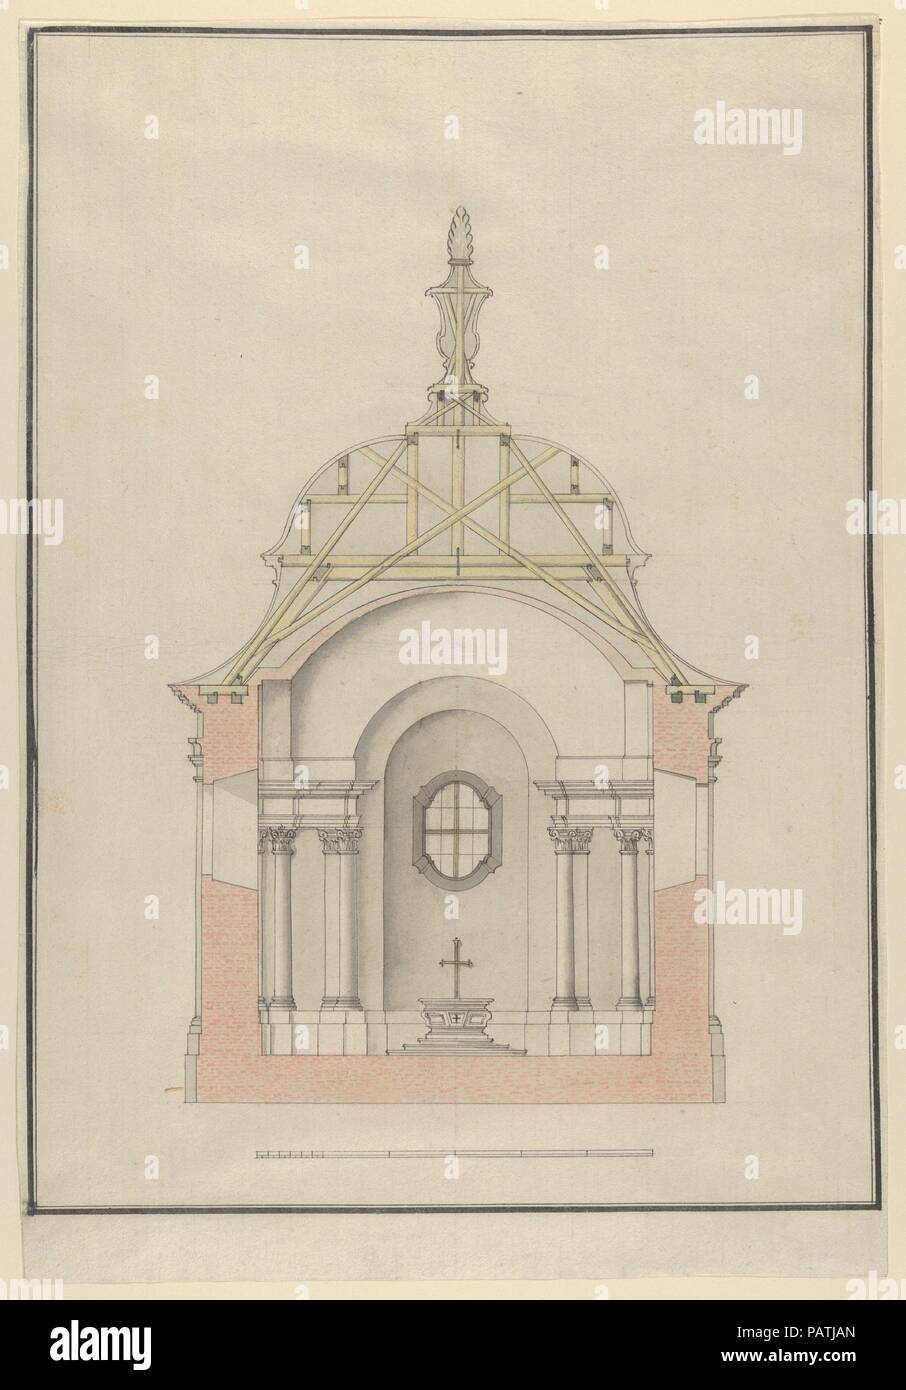 cross section of a baroque church or chapel with a bell shaped roof